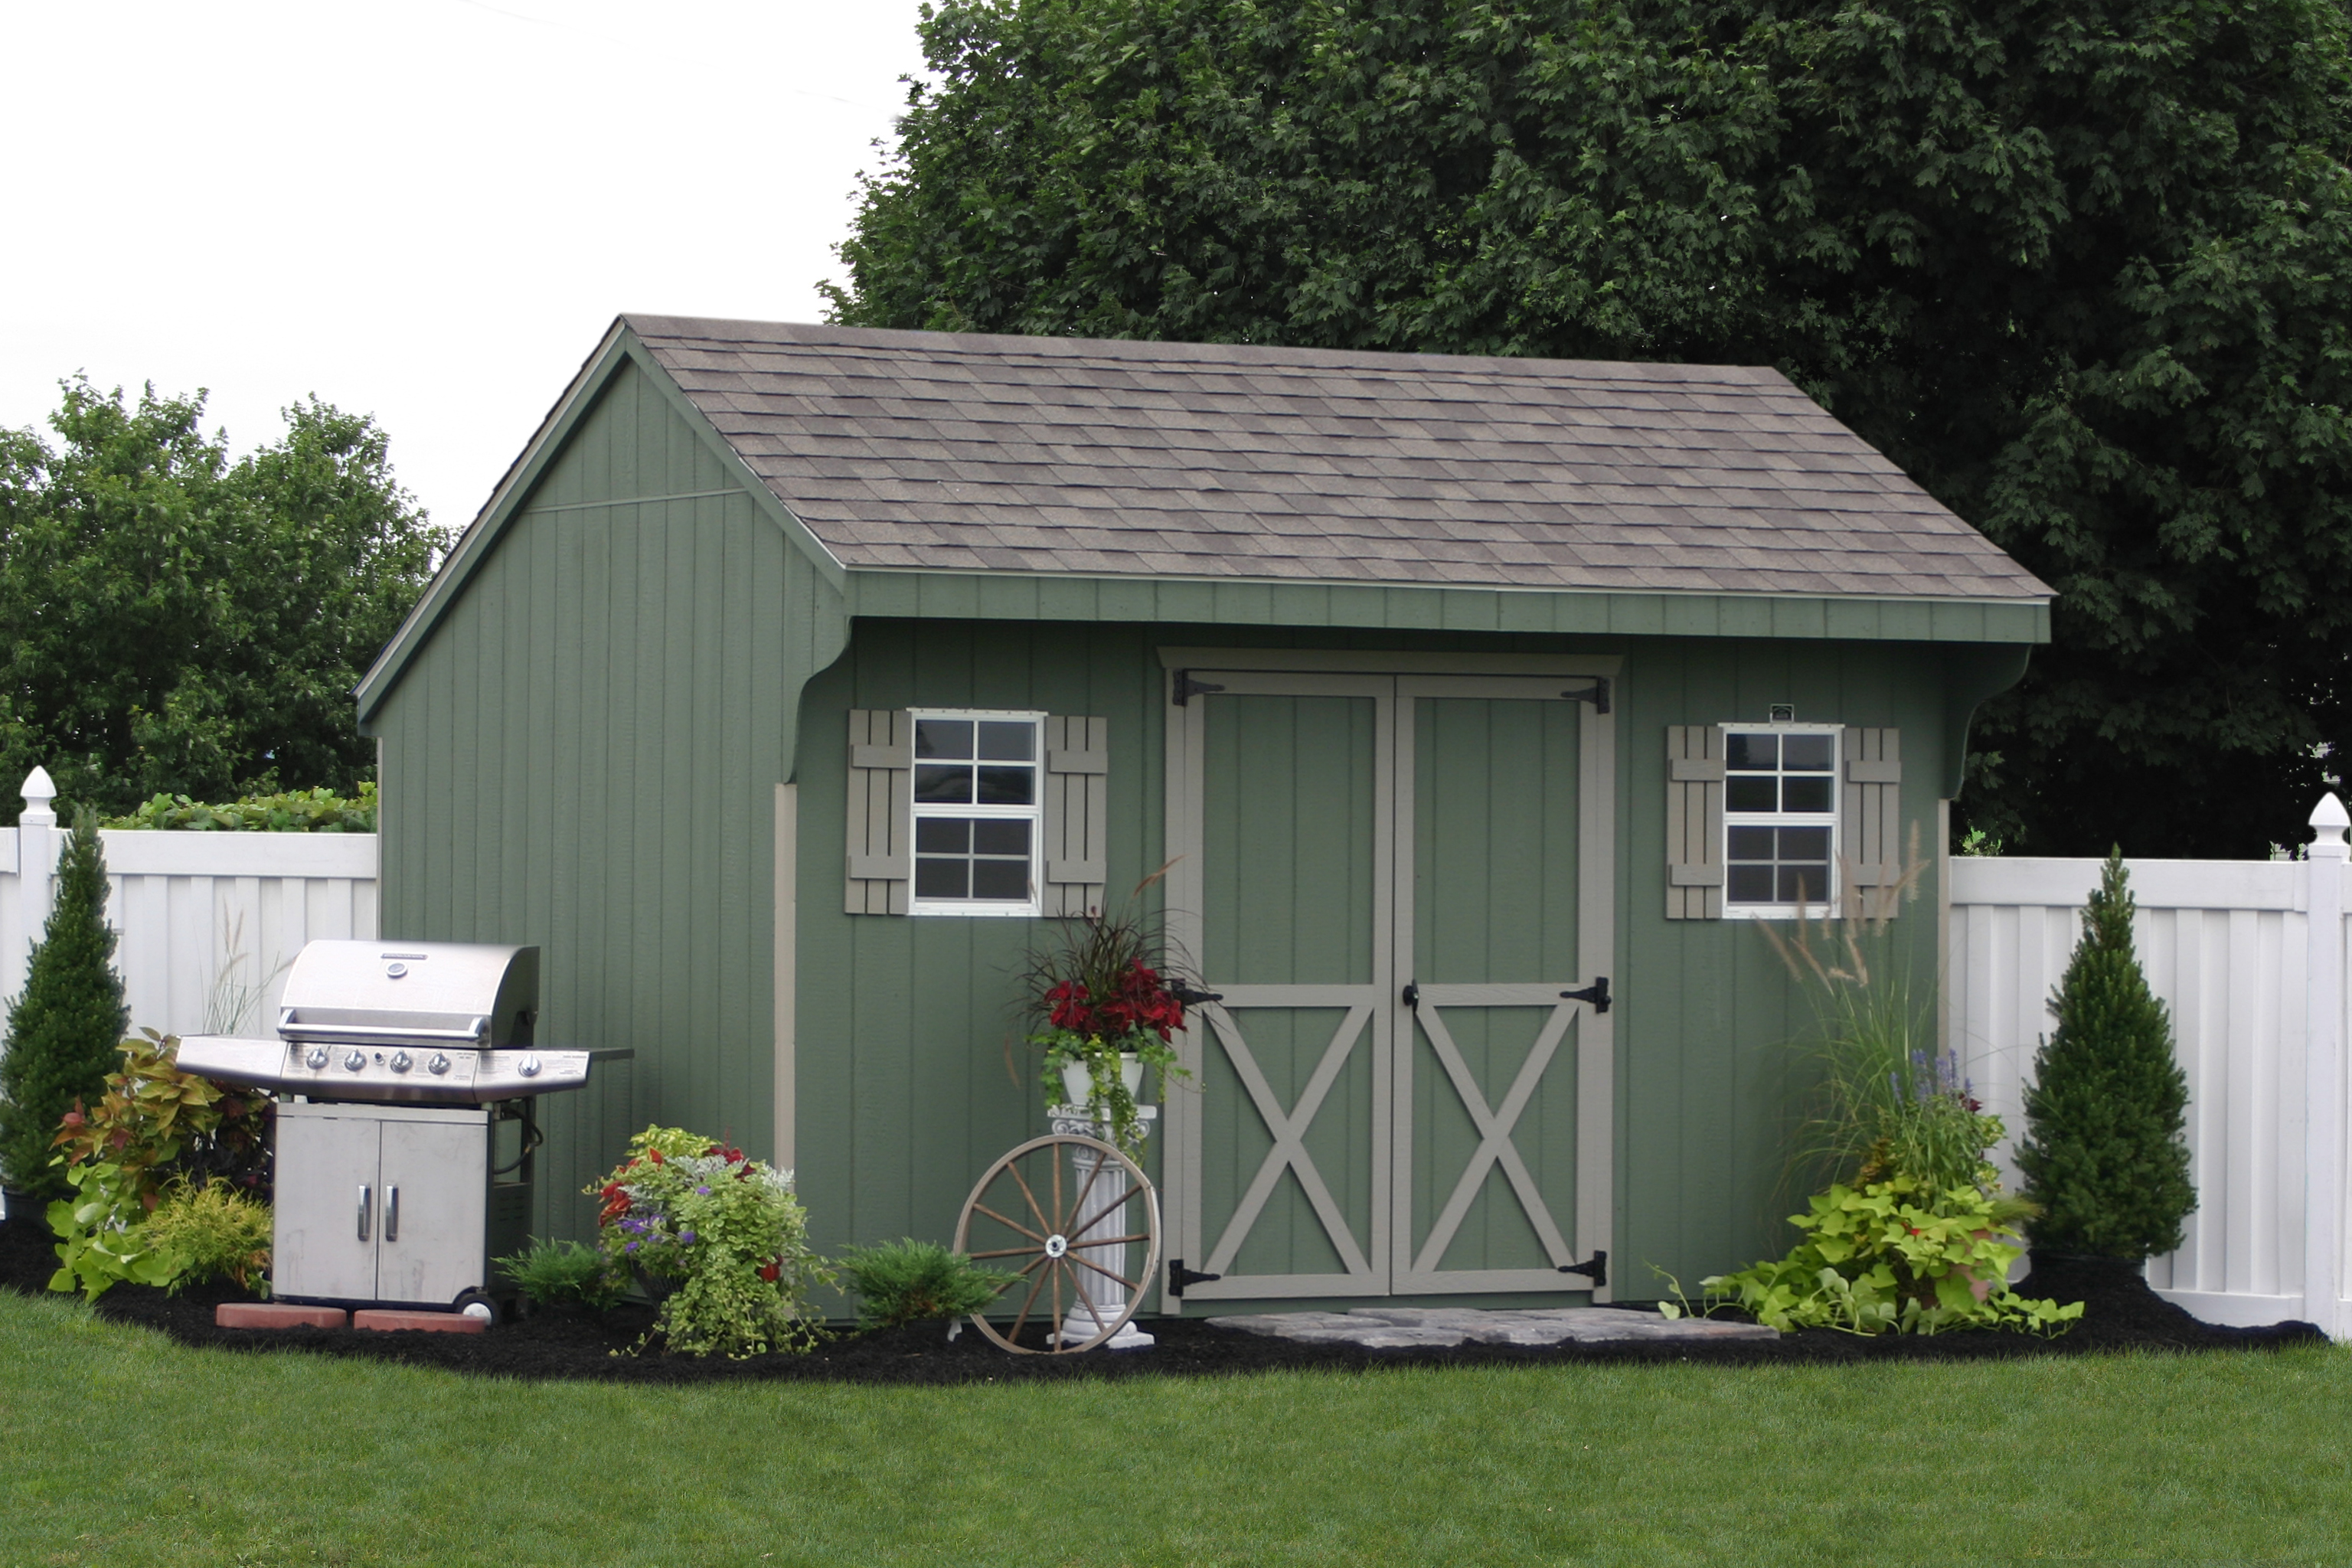 binghamton in oneonta sale barn amish beige company for deluxe built storage shed ny sheds capecod